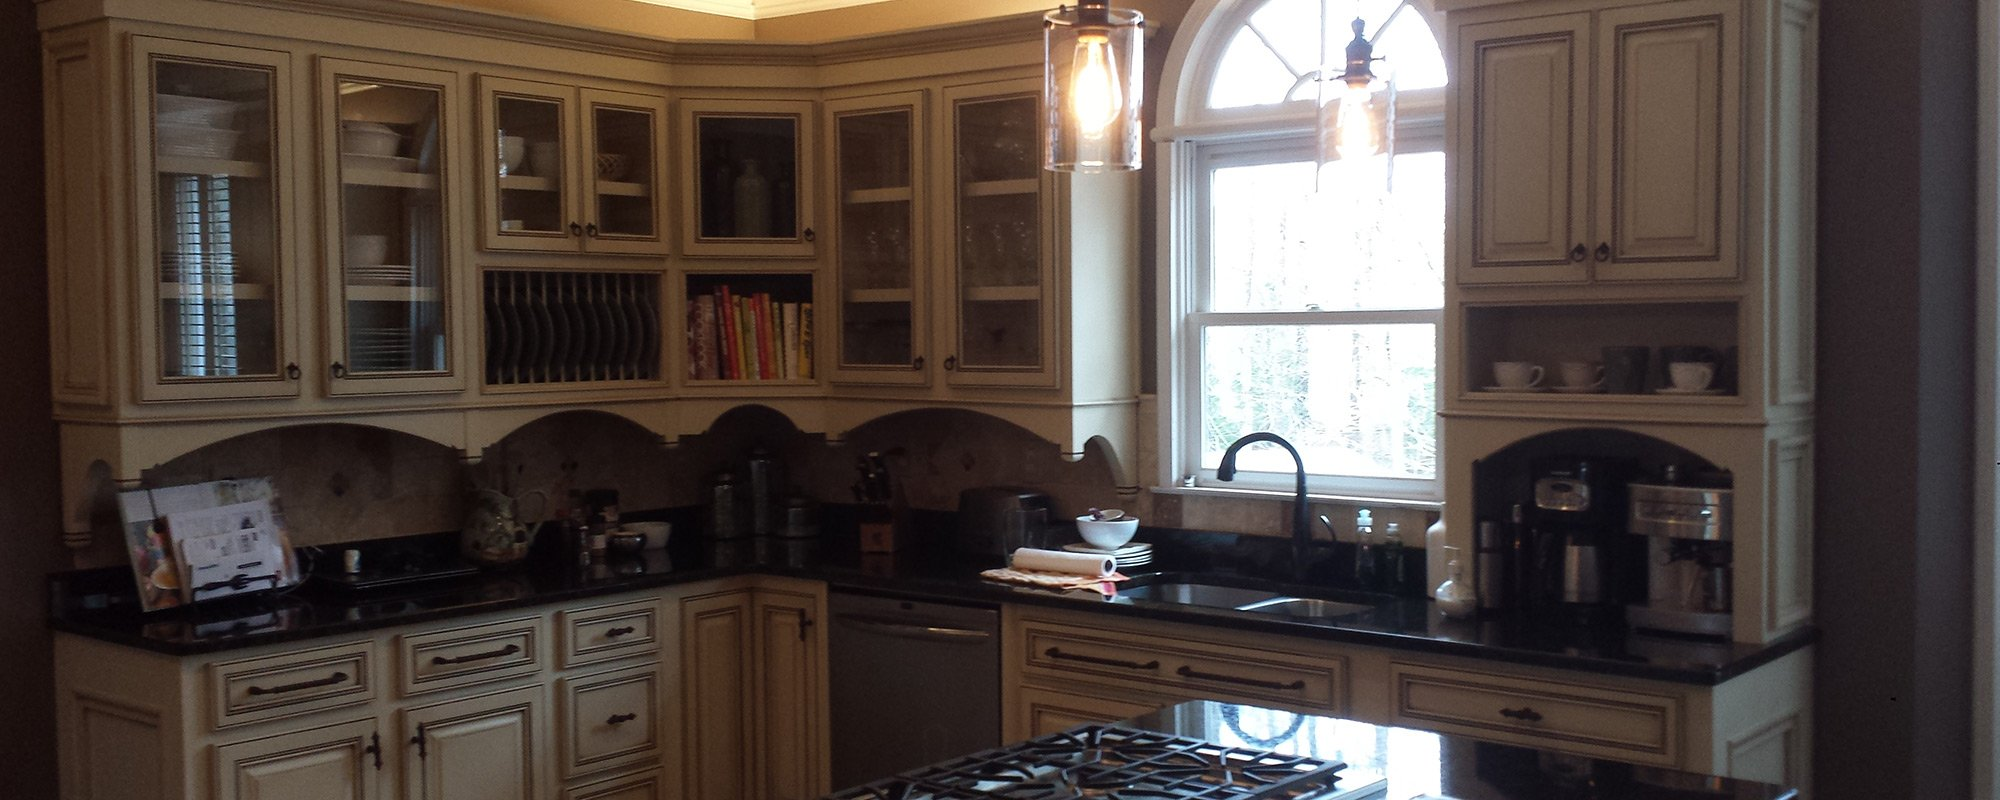 best price custom cabinets cabinet refacing atlanta ga